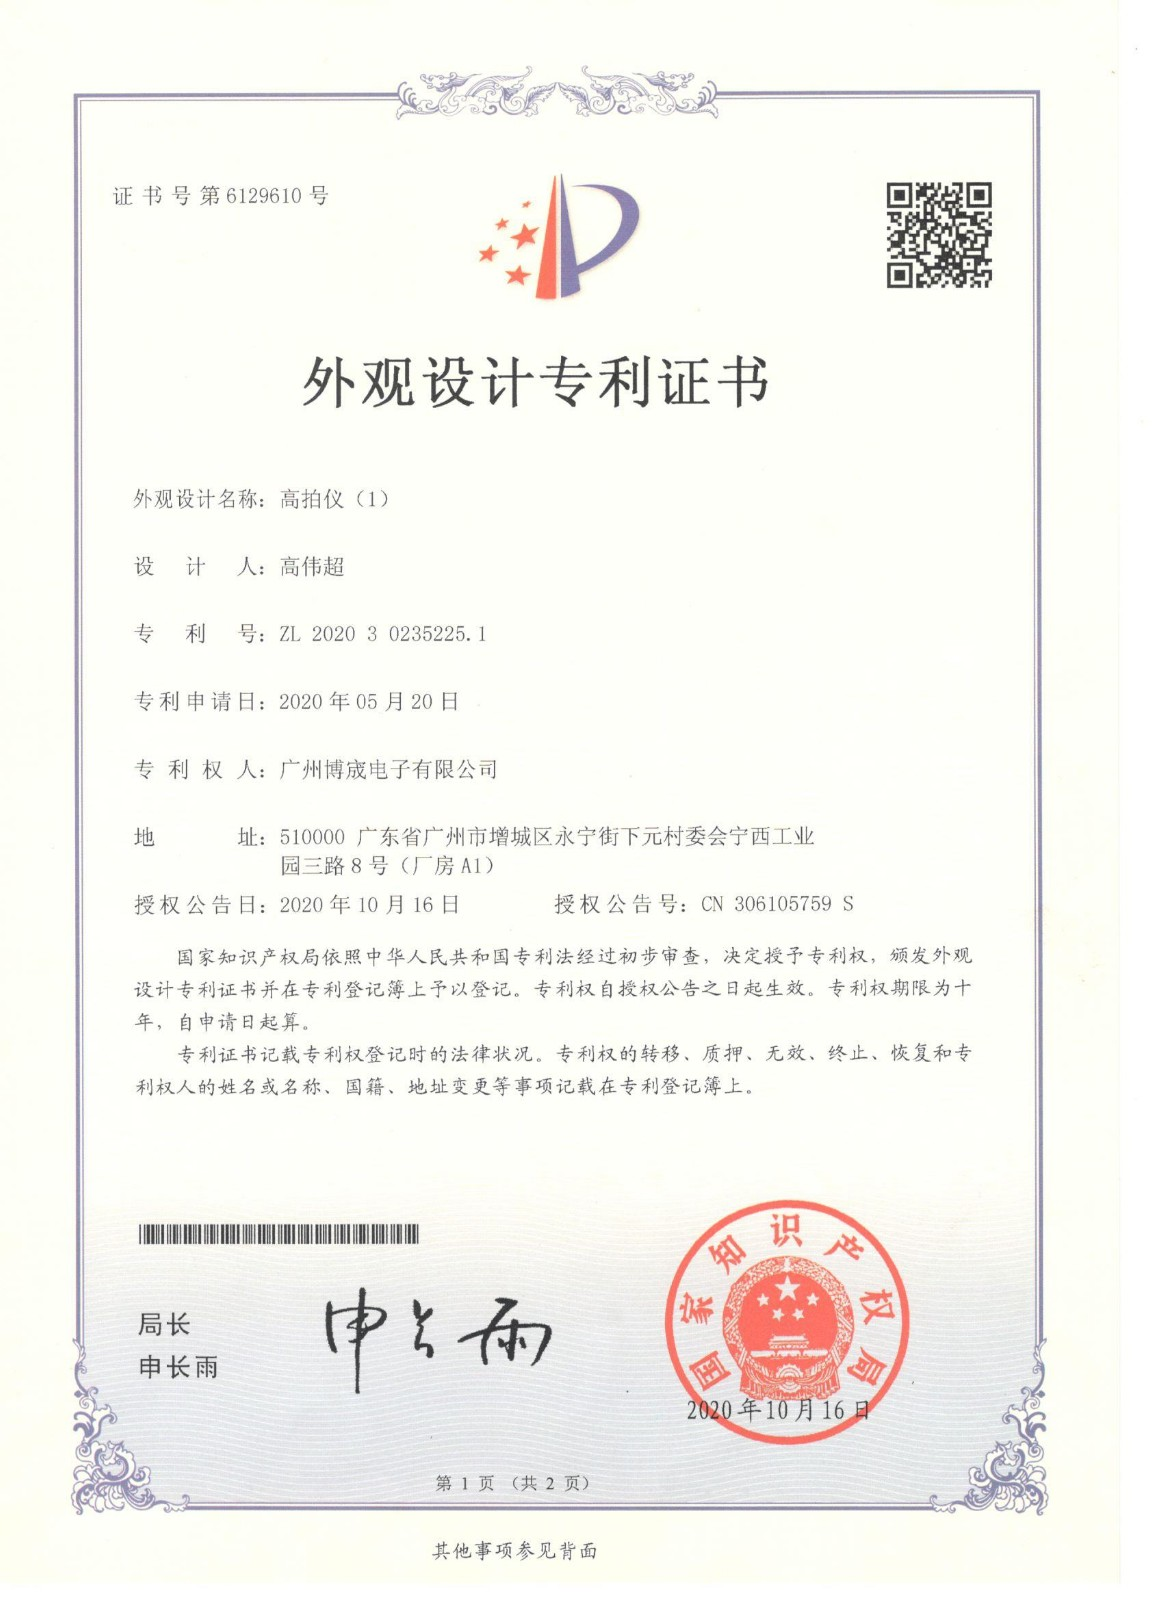 Appearance patent certificate 1